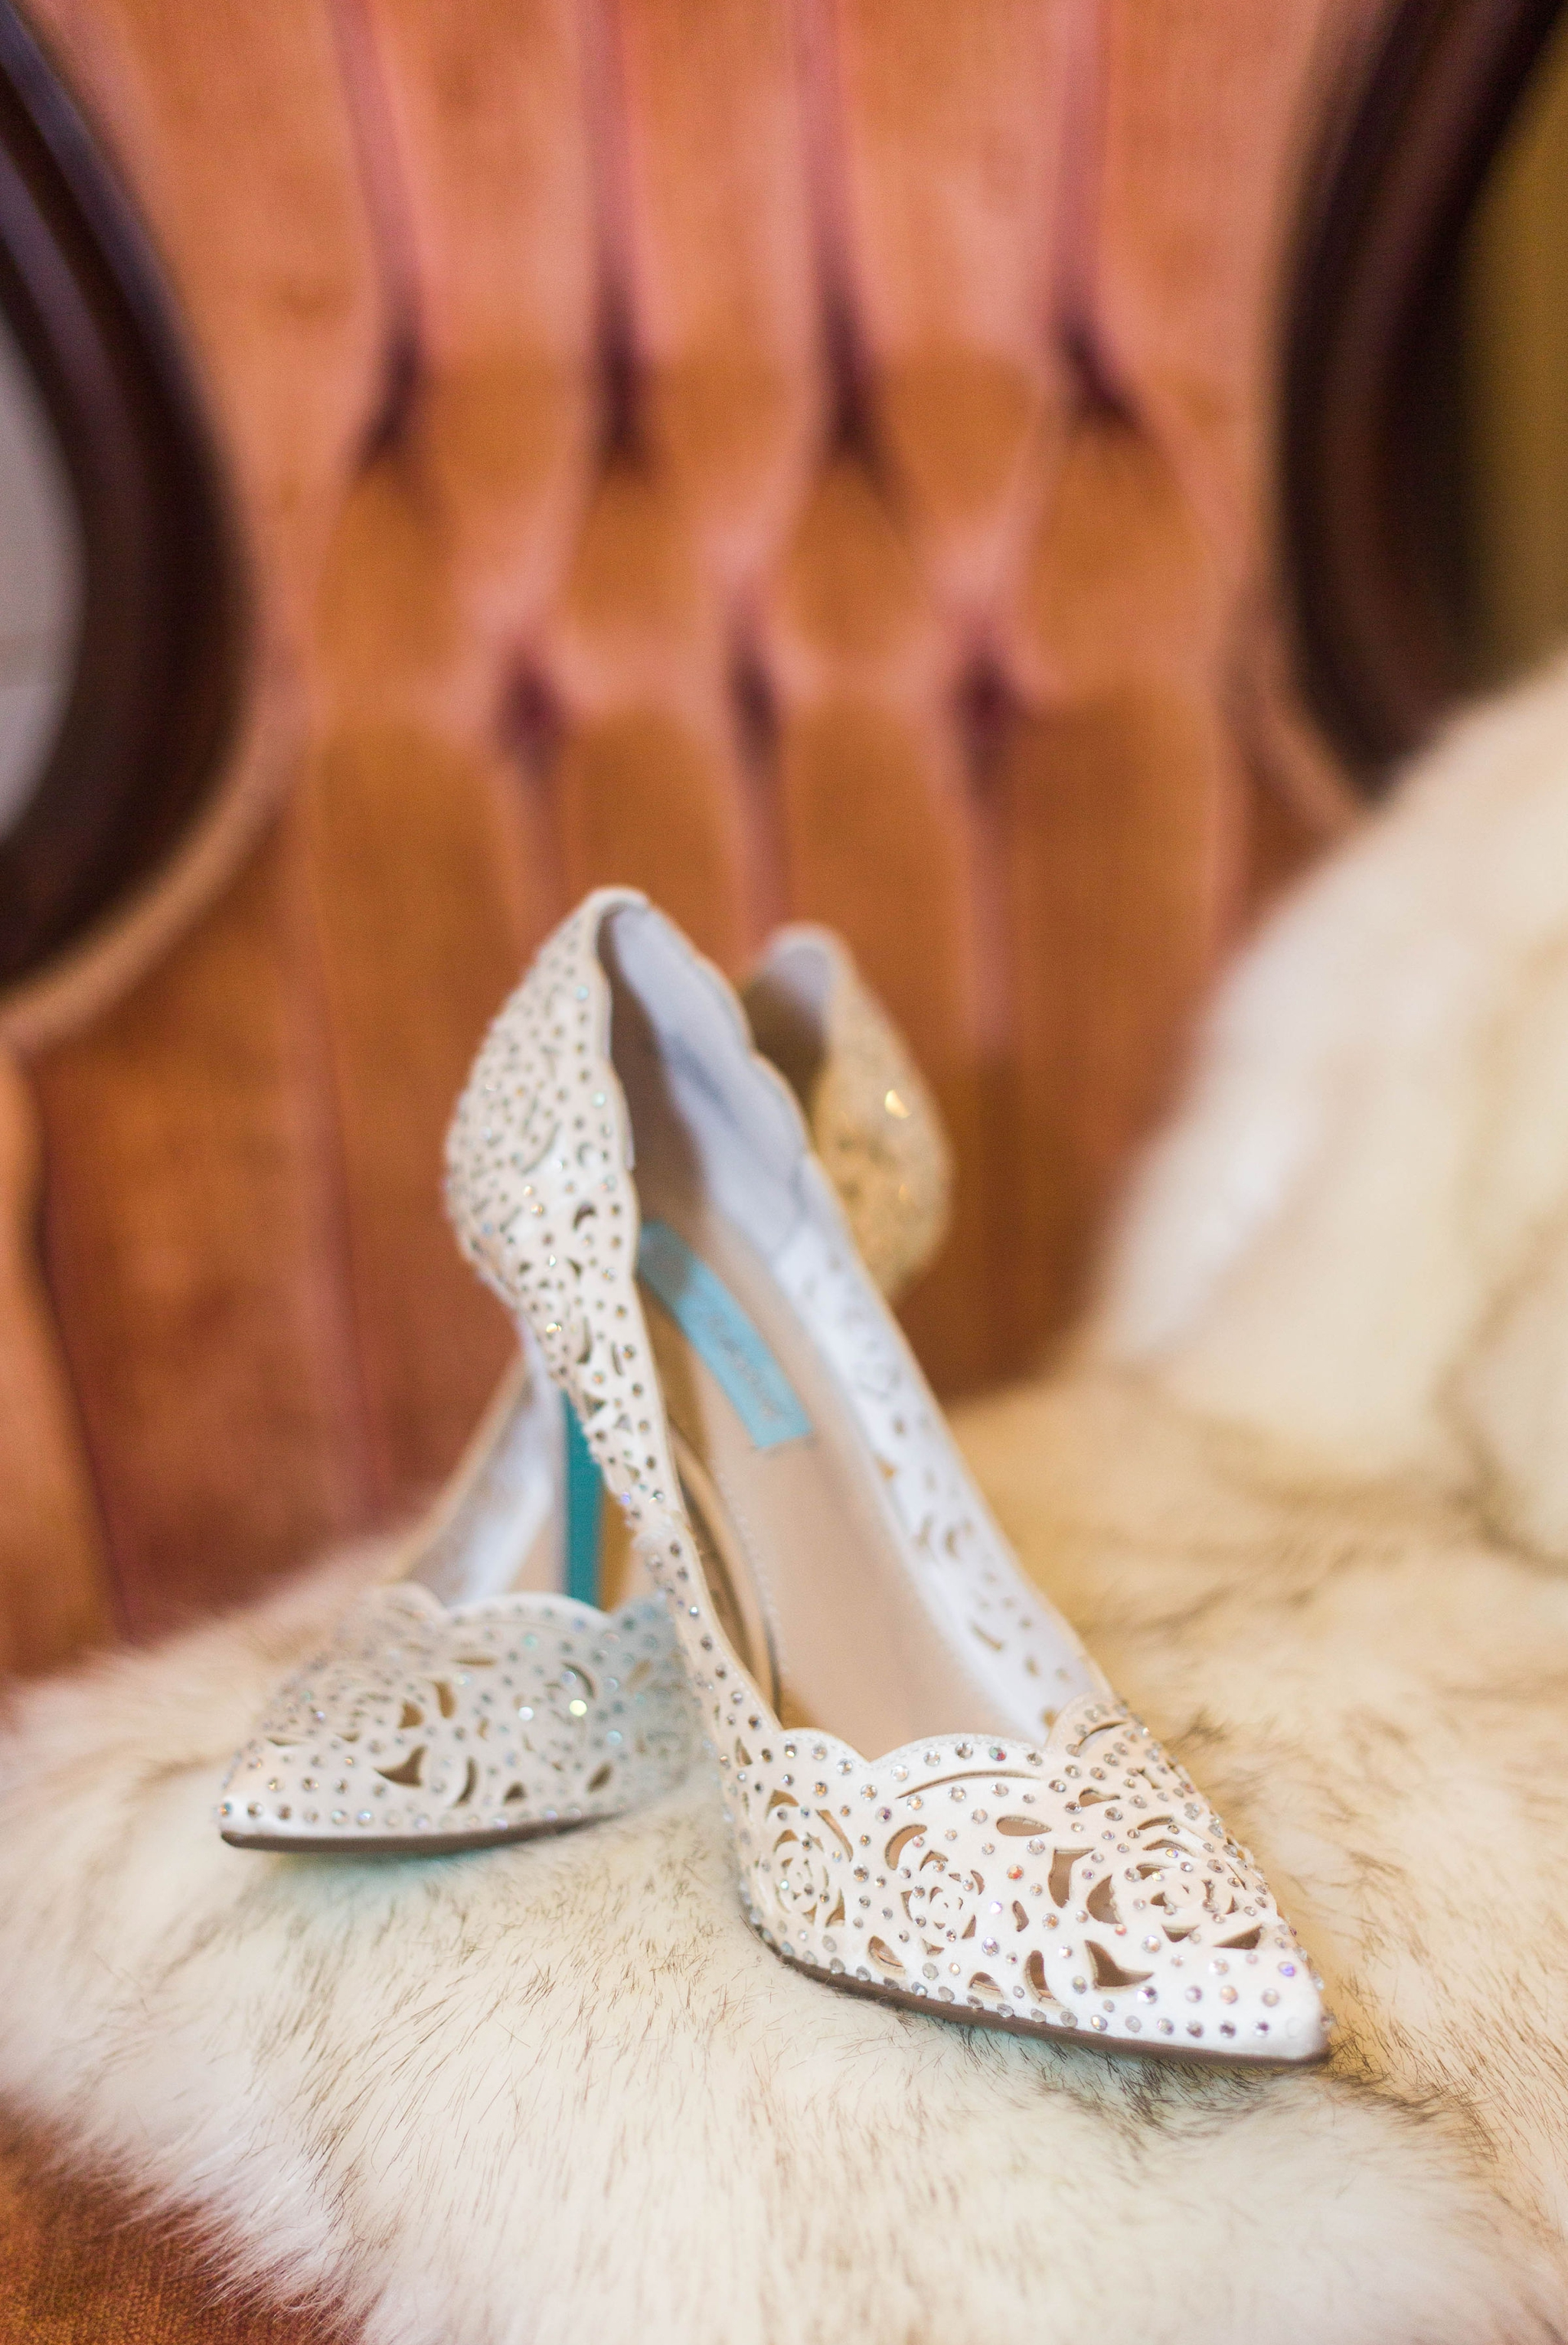 Betsey Johnson blue bridal shoes - - Honolulu Oahu Hawaii Wedding Photographer